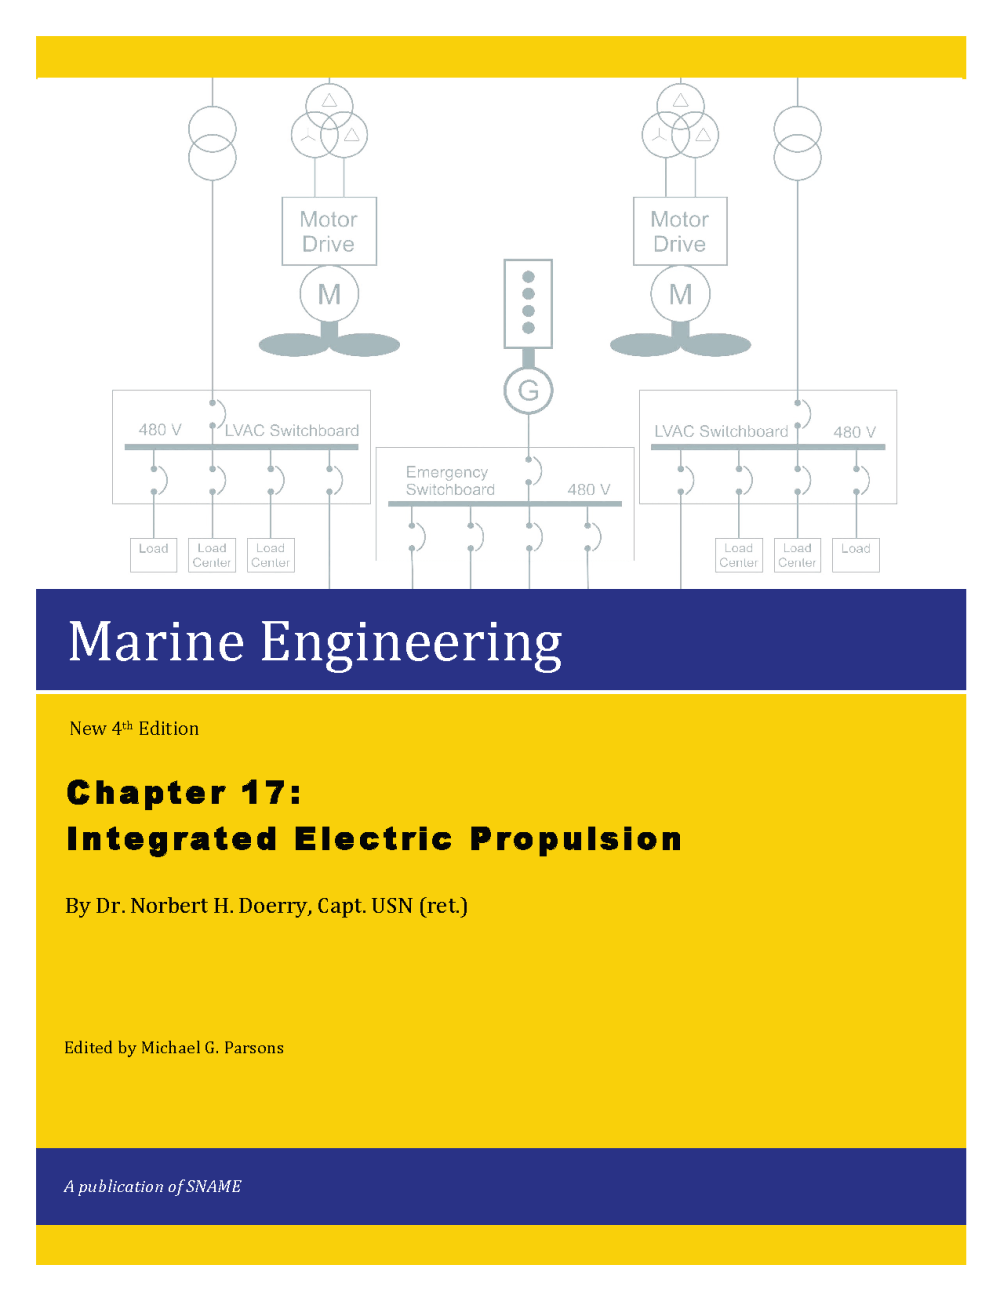 medium resolution of this release is first of 3 chapters in the electrical area of the next marine engineering revision chapter 17 covers modern electric propulsion systems